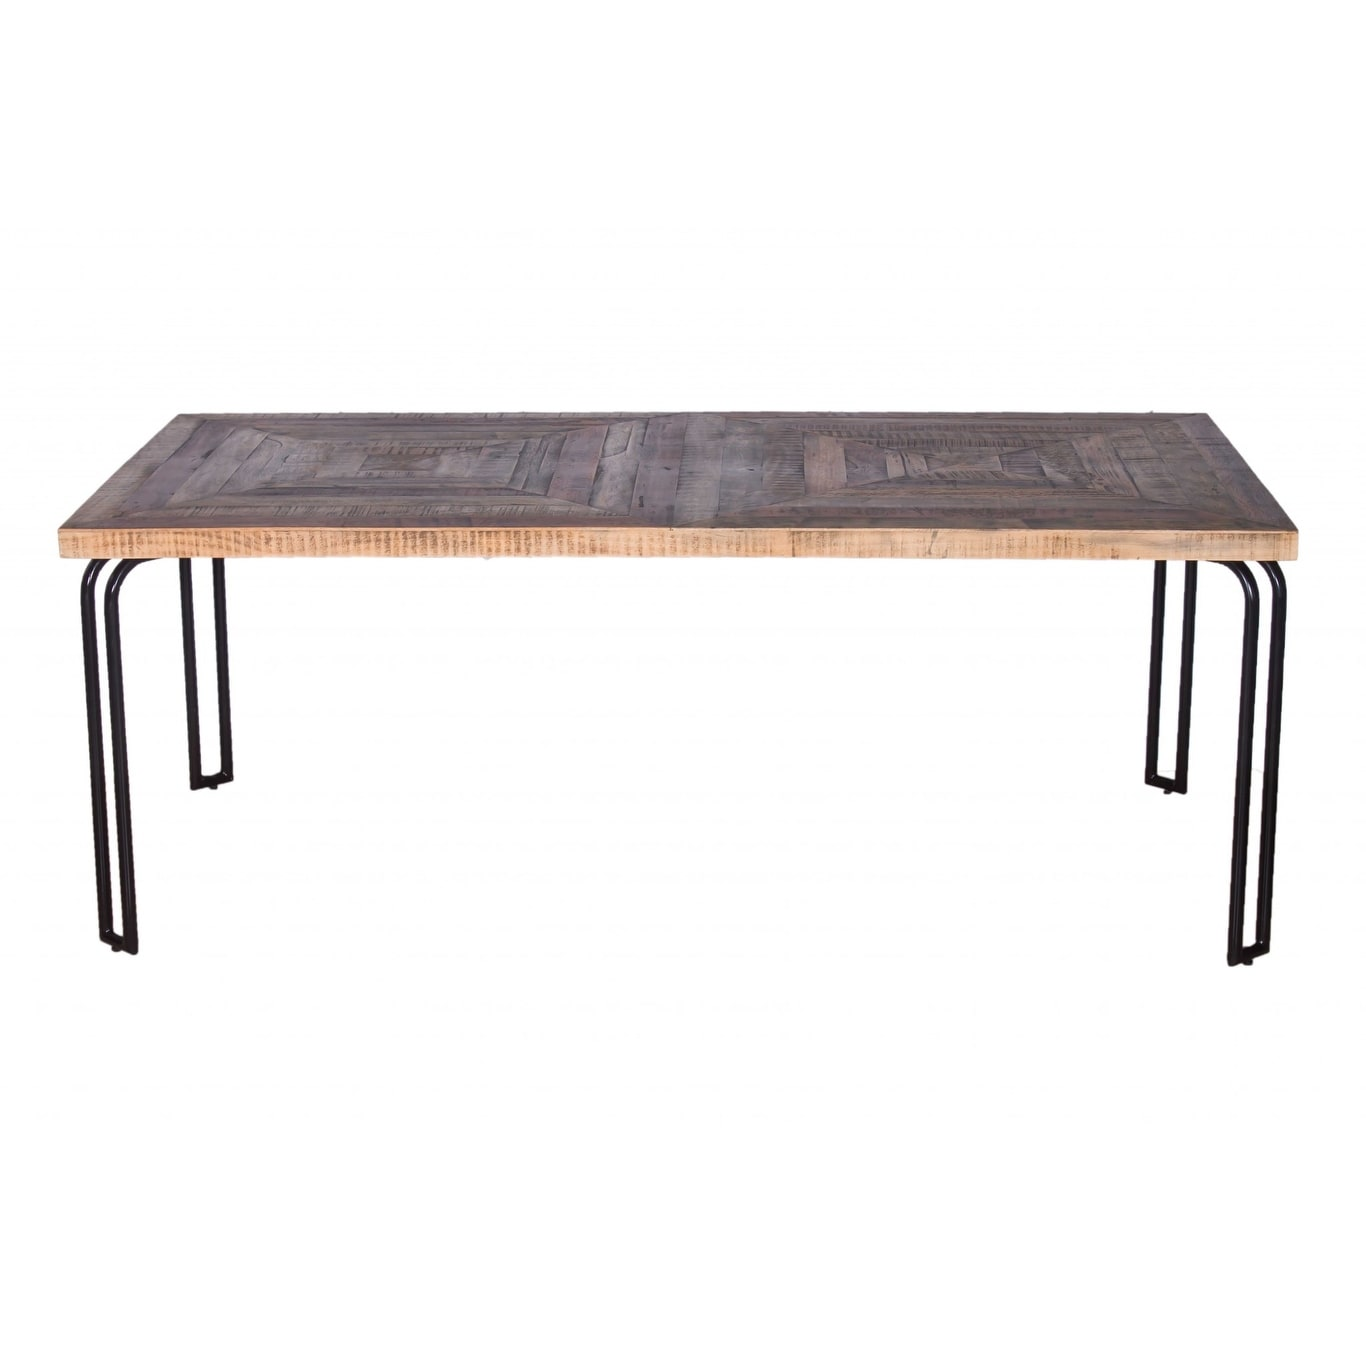 Homeroots 40 X 80 X 30 Natural Black 6 Wood 3 Iron Large Dining Table 30 X40 X80 30 X40 X80 On Sale Overstock 32230745